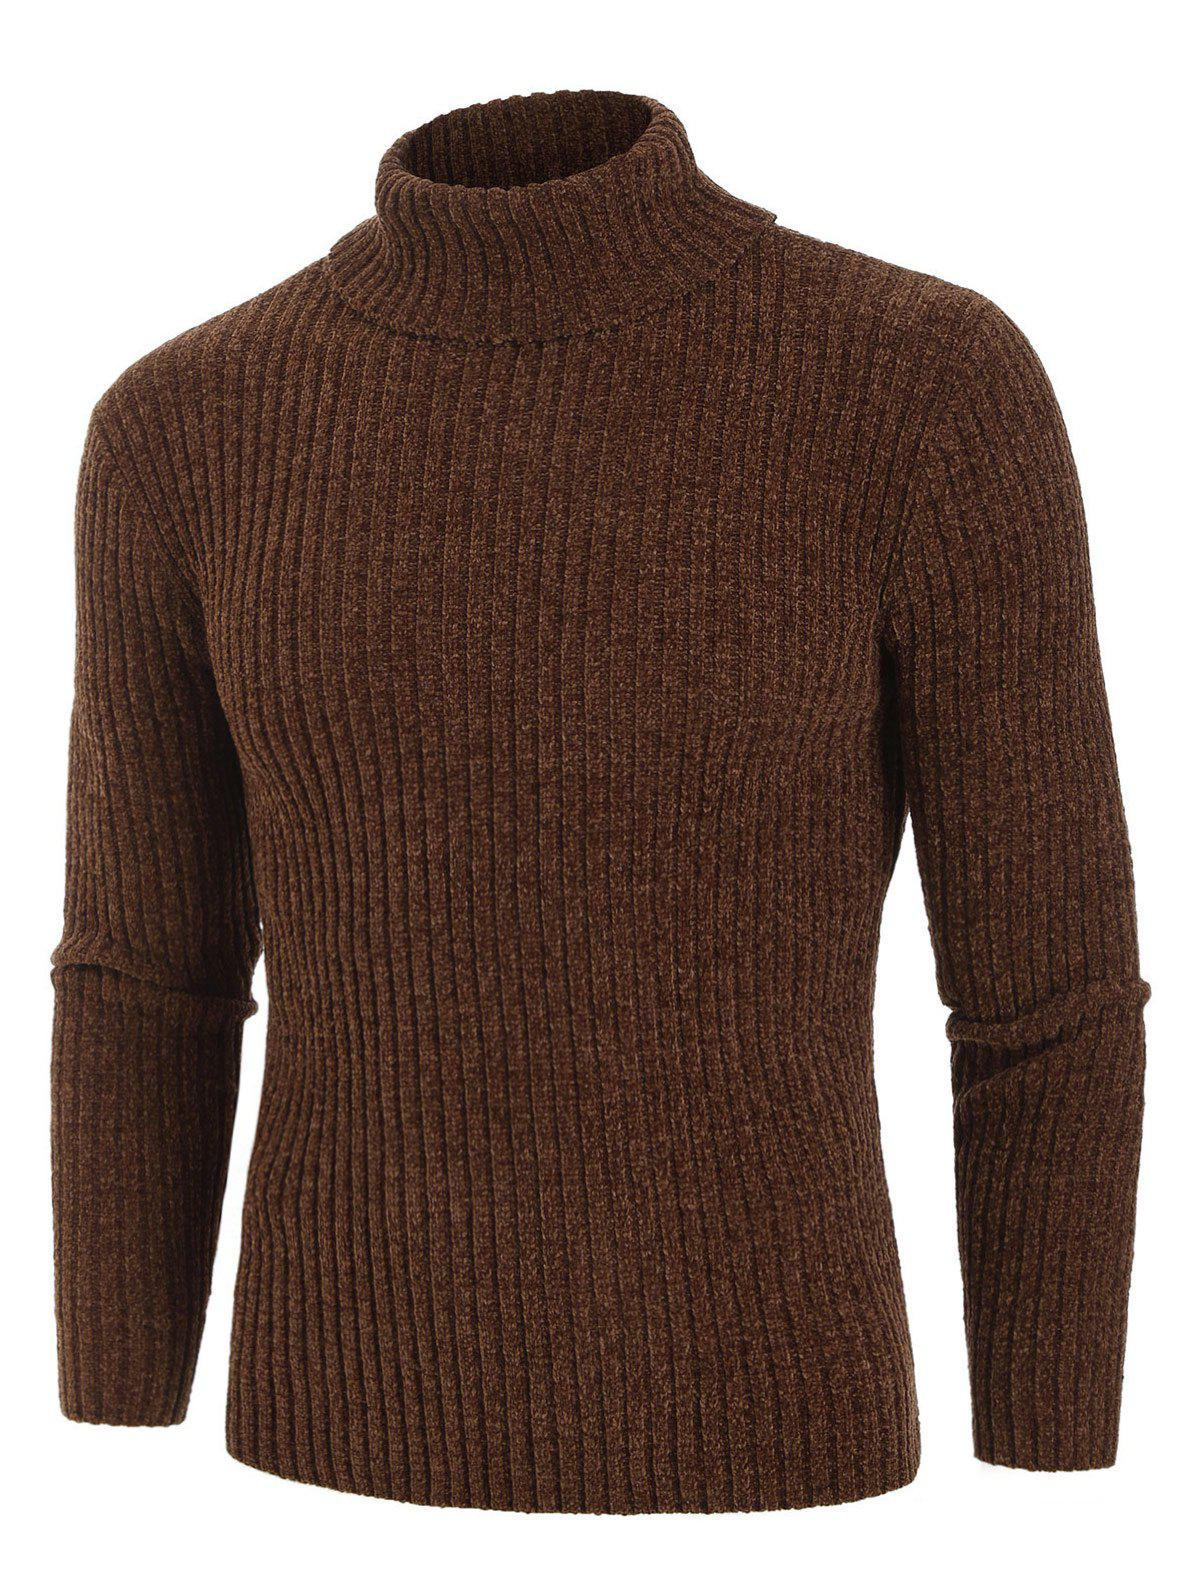 Plain Turtleneck Chenille Long Sleeve Sweater - BROWN M